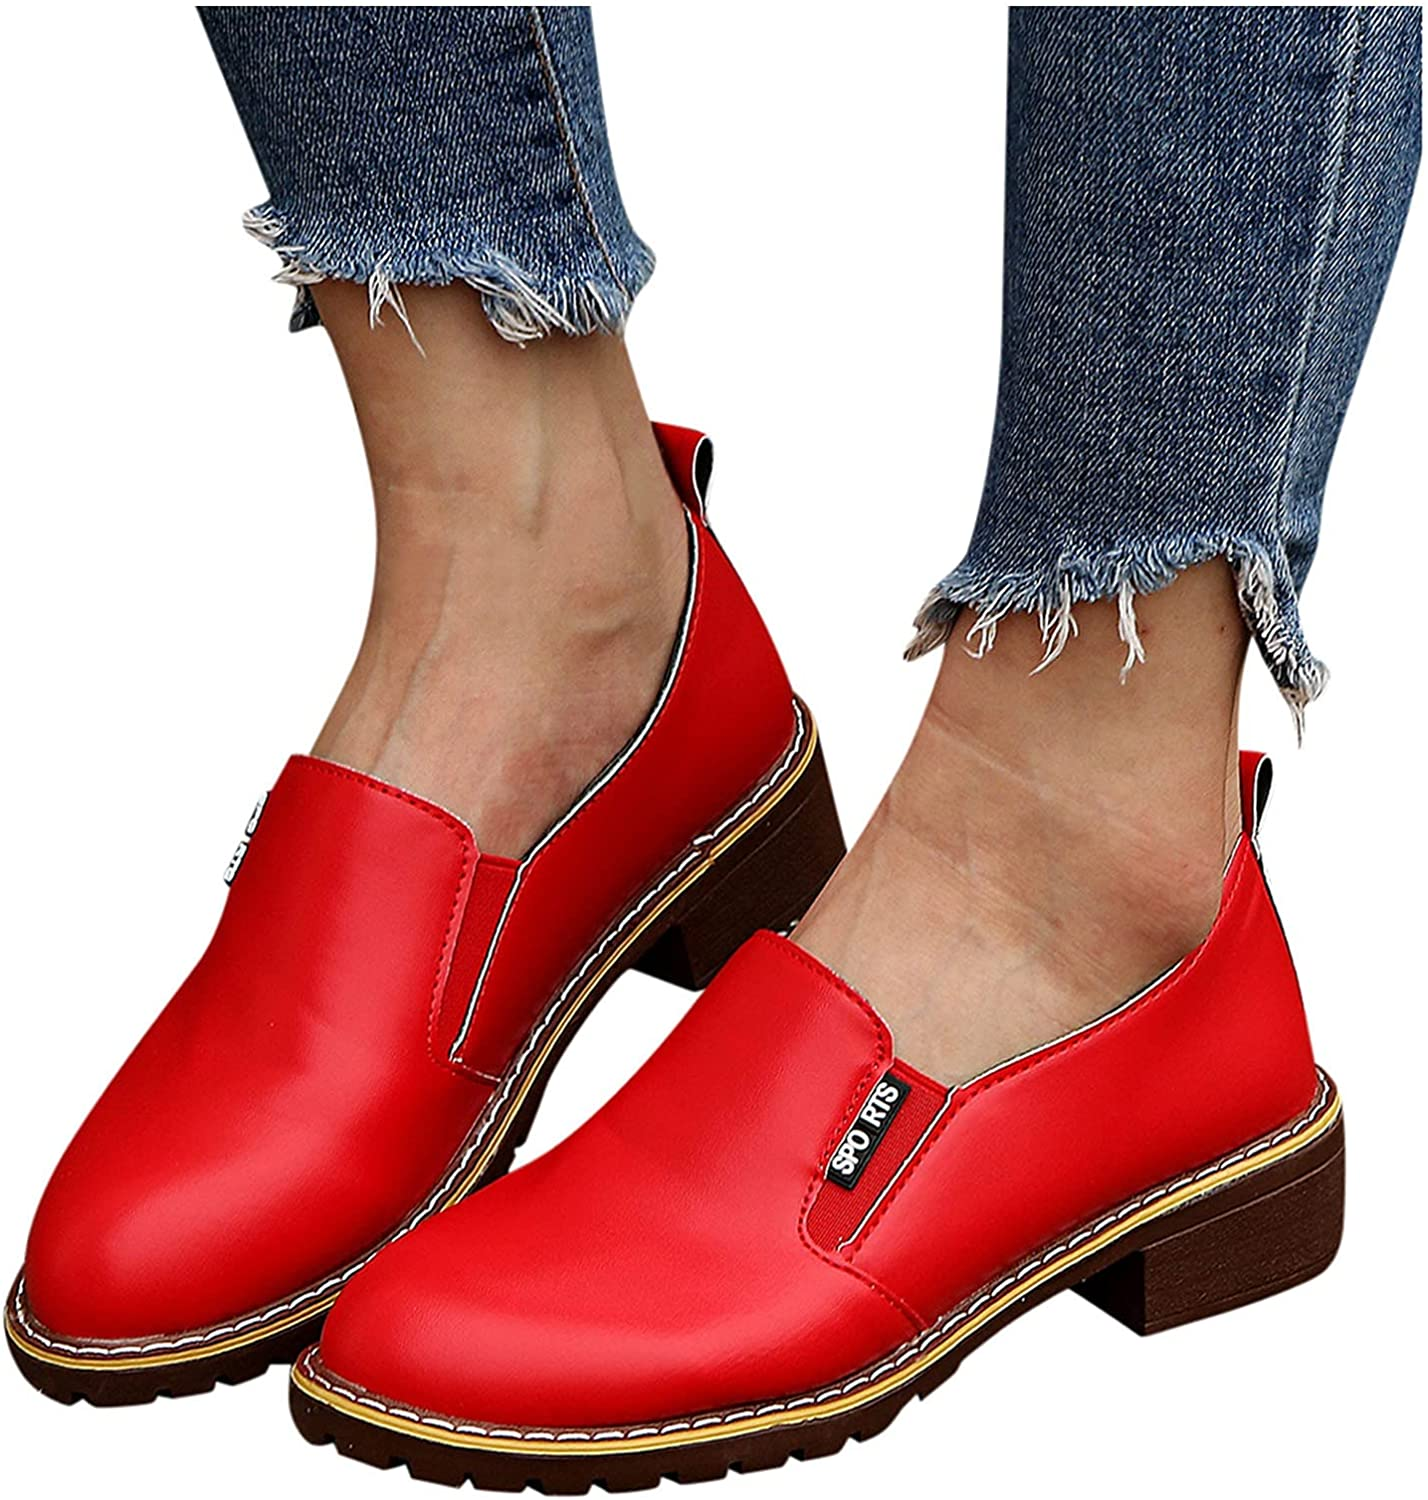 Slip On Leather Shoes for Boston Mall Women Breathable Bo Short National uniform free shipping Square Heels